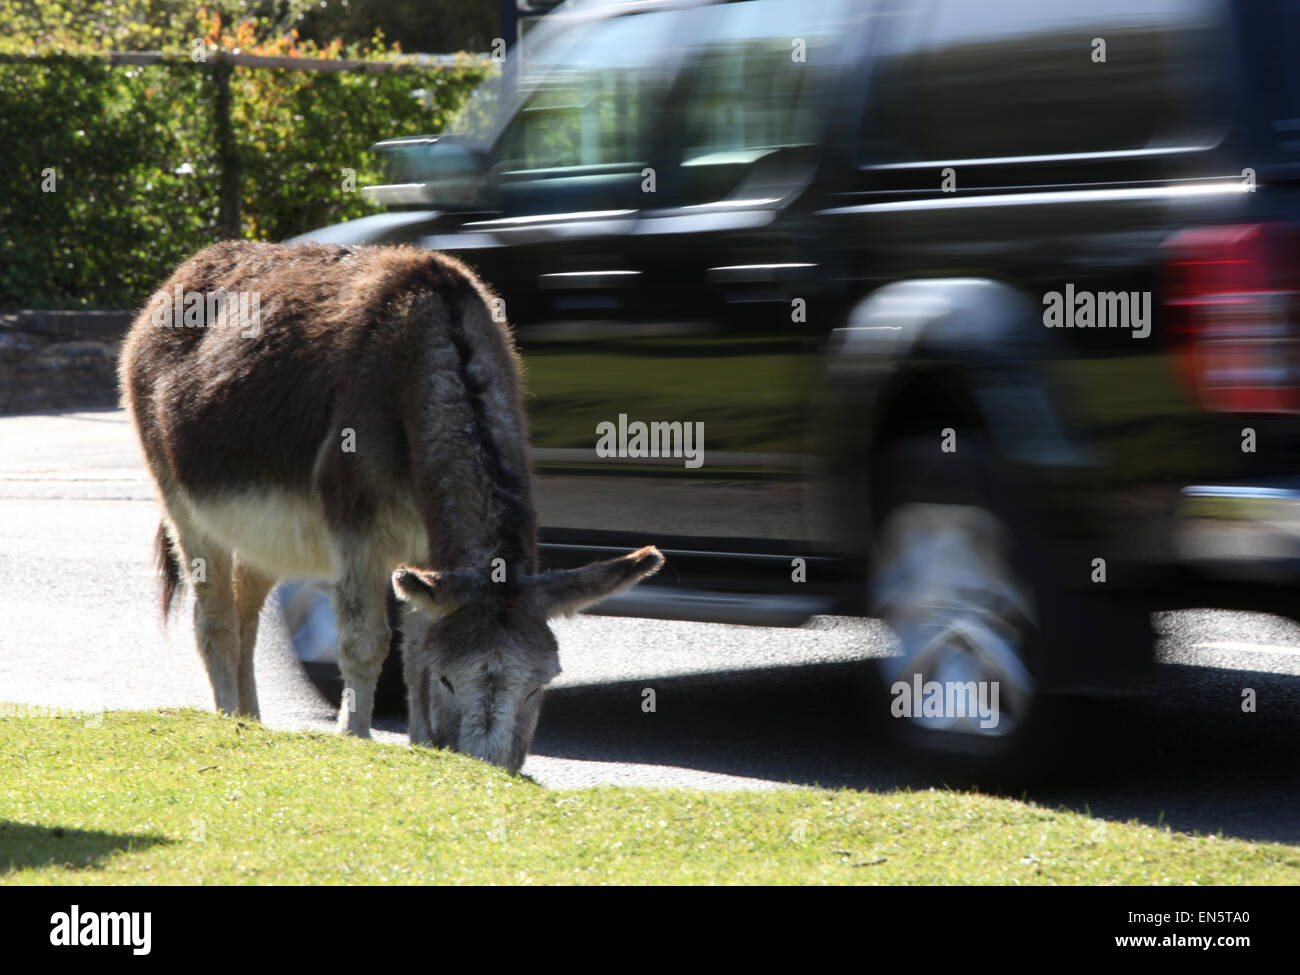 Donkey by the roadside in Beaulieu in the New Forest Hampshire UK - Stock Image